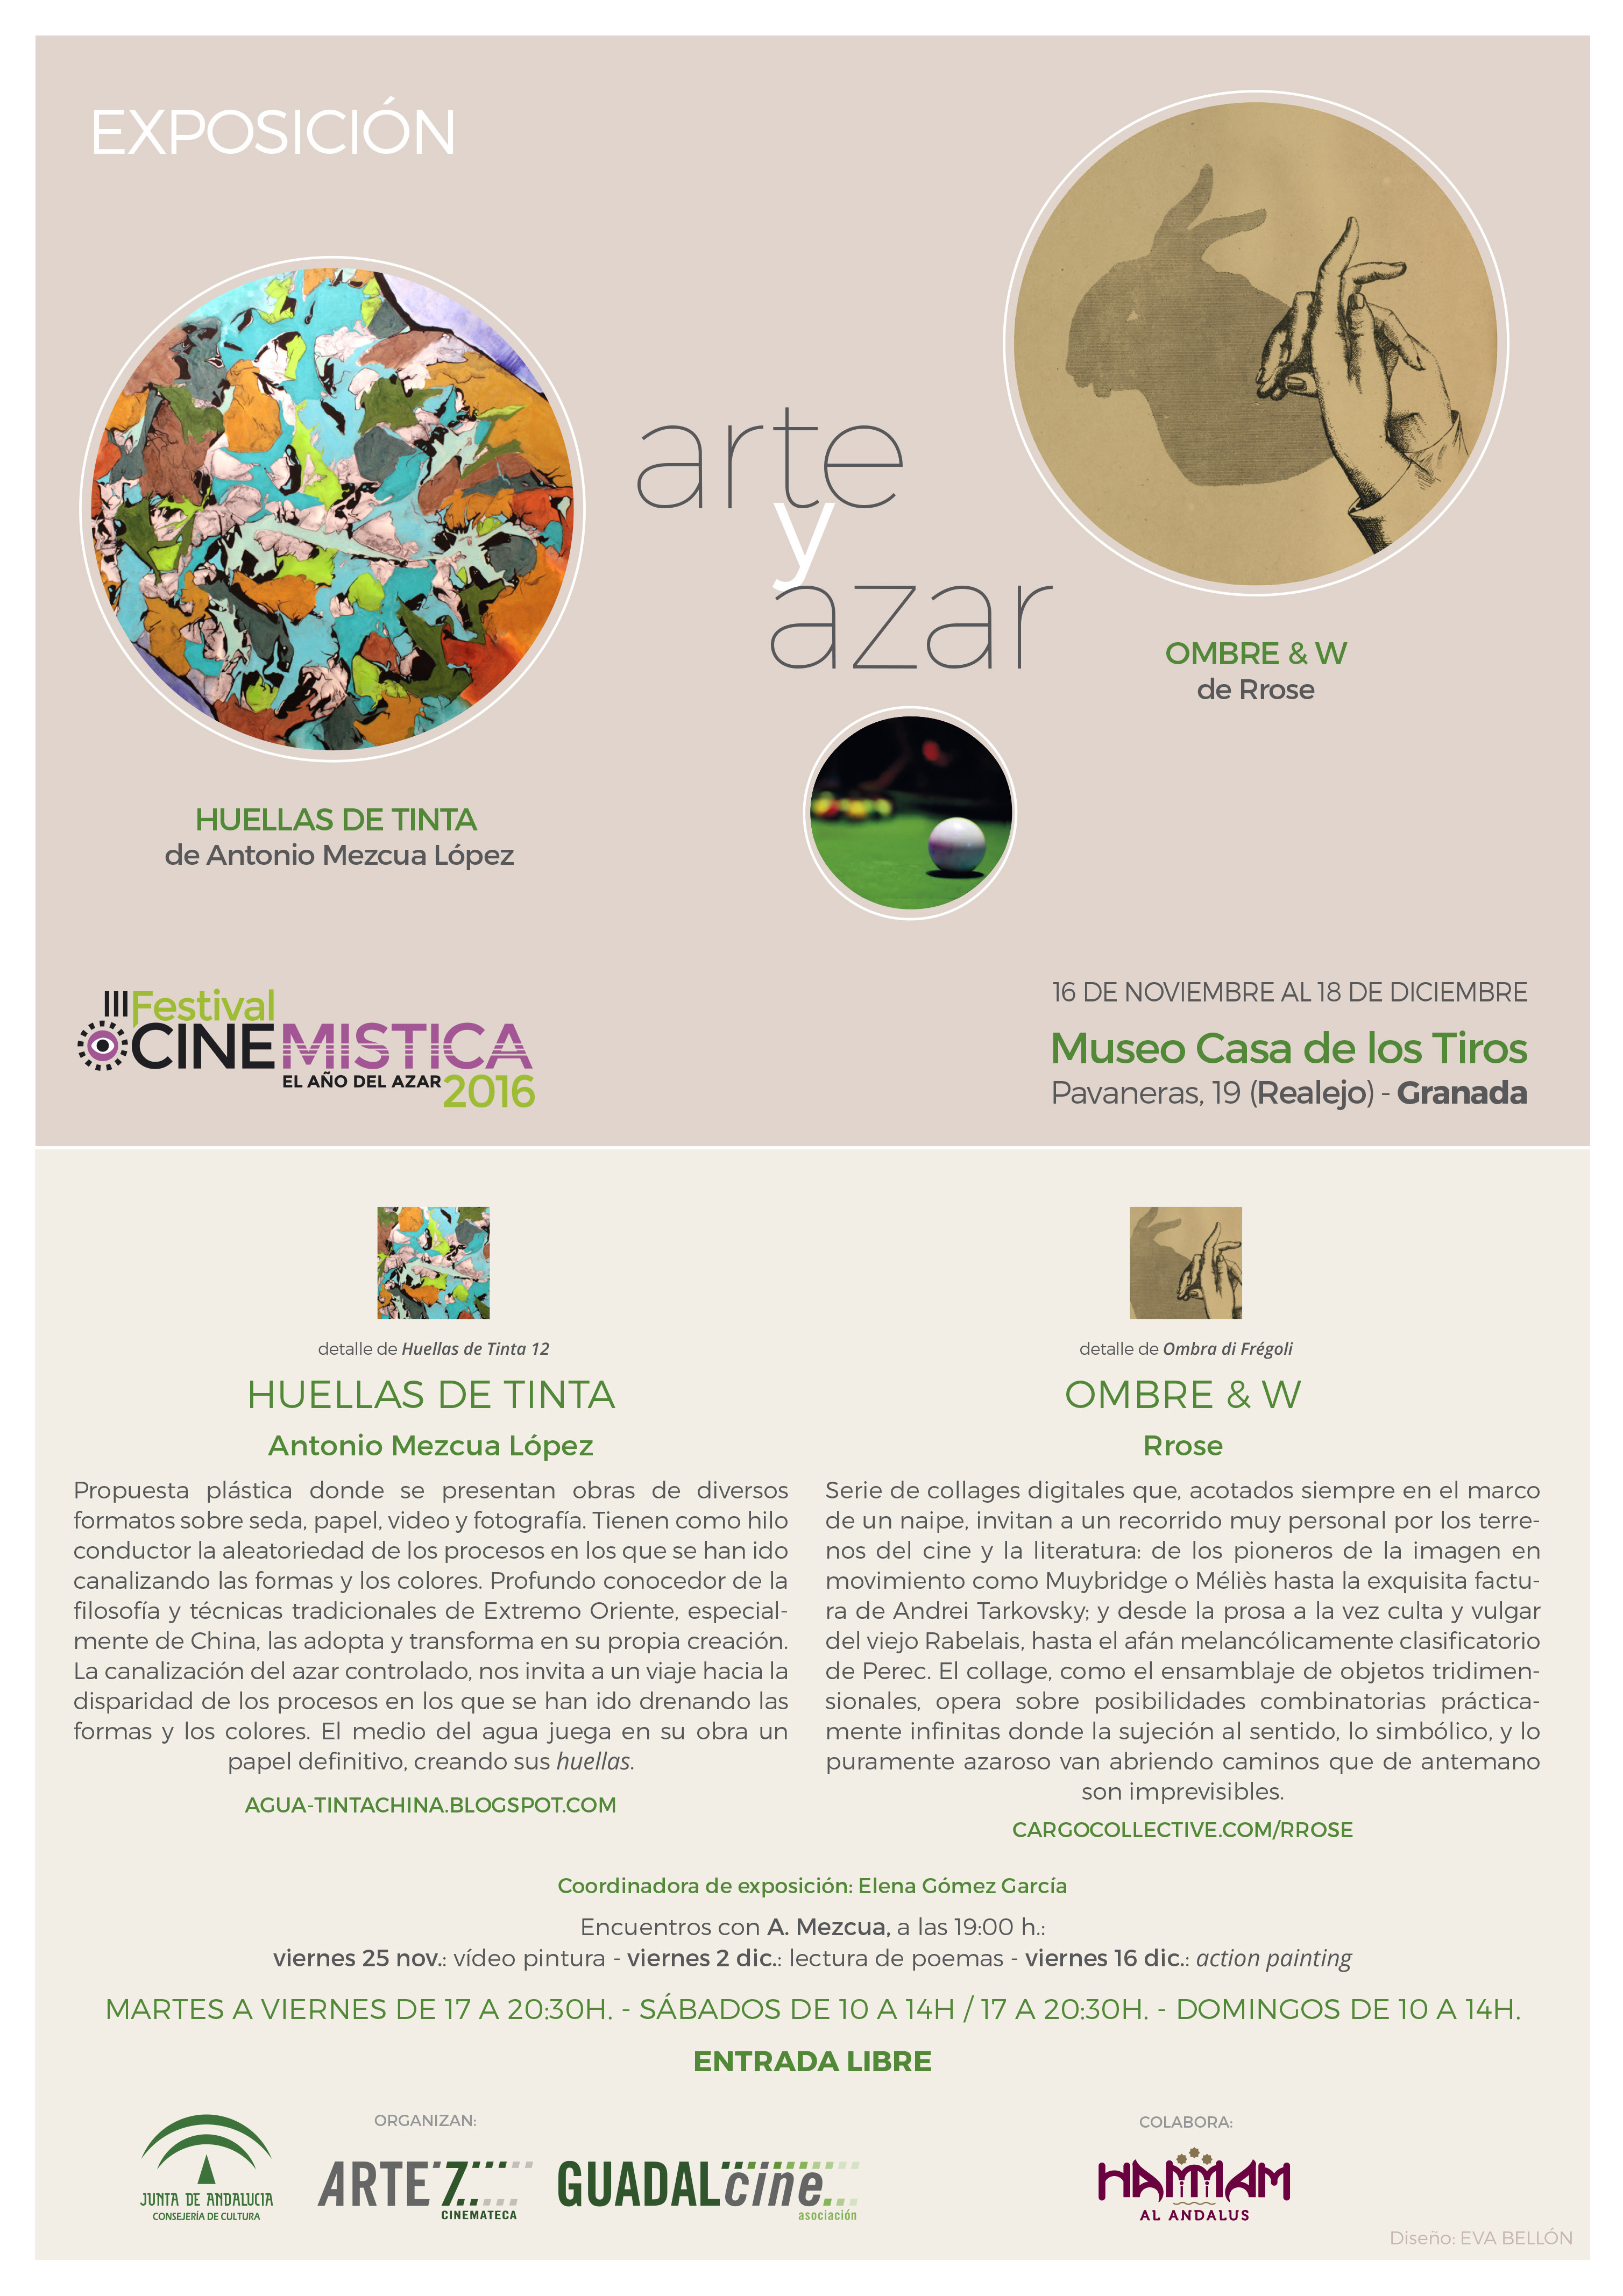 expo_ArteyAzar_flyer_03